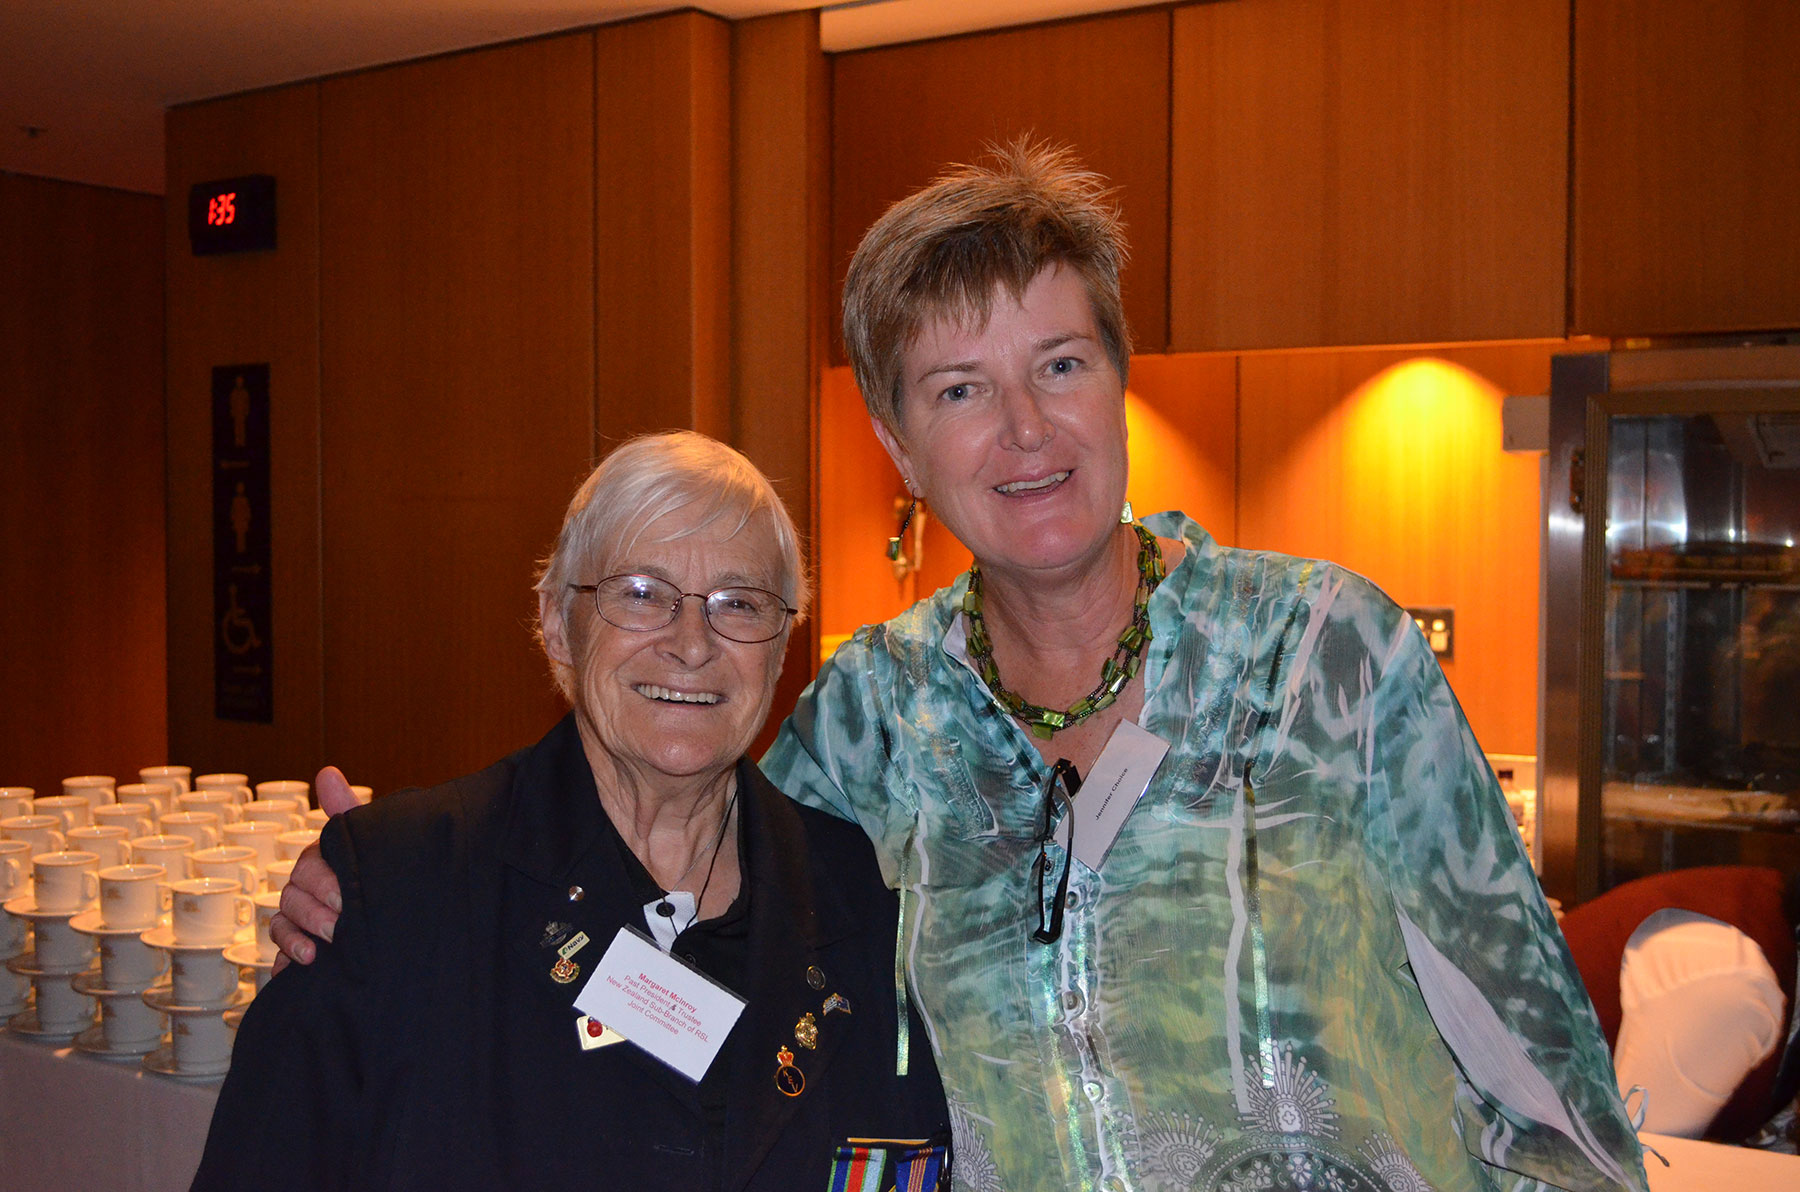 19 Symposium 6th Dec 2012. Daughter Of Veteran Jennifer Choice and Nz Sub Branch Of Rsl Margaret Mcinroy